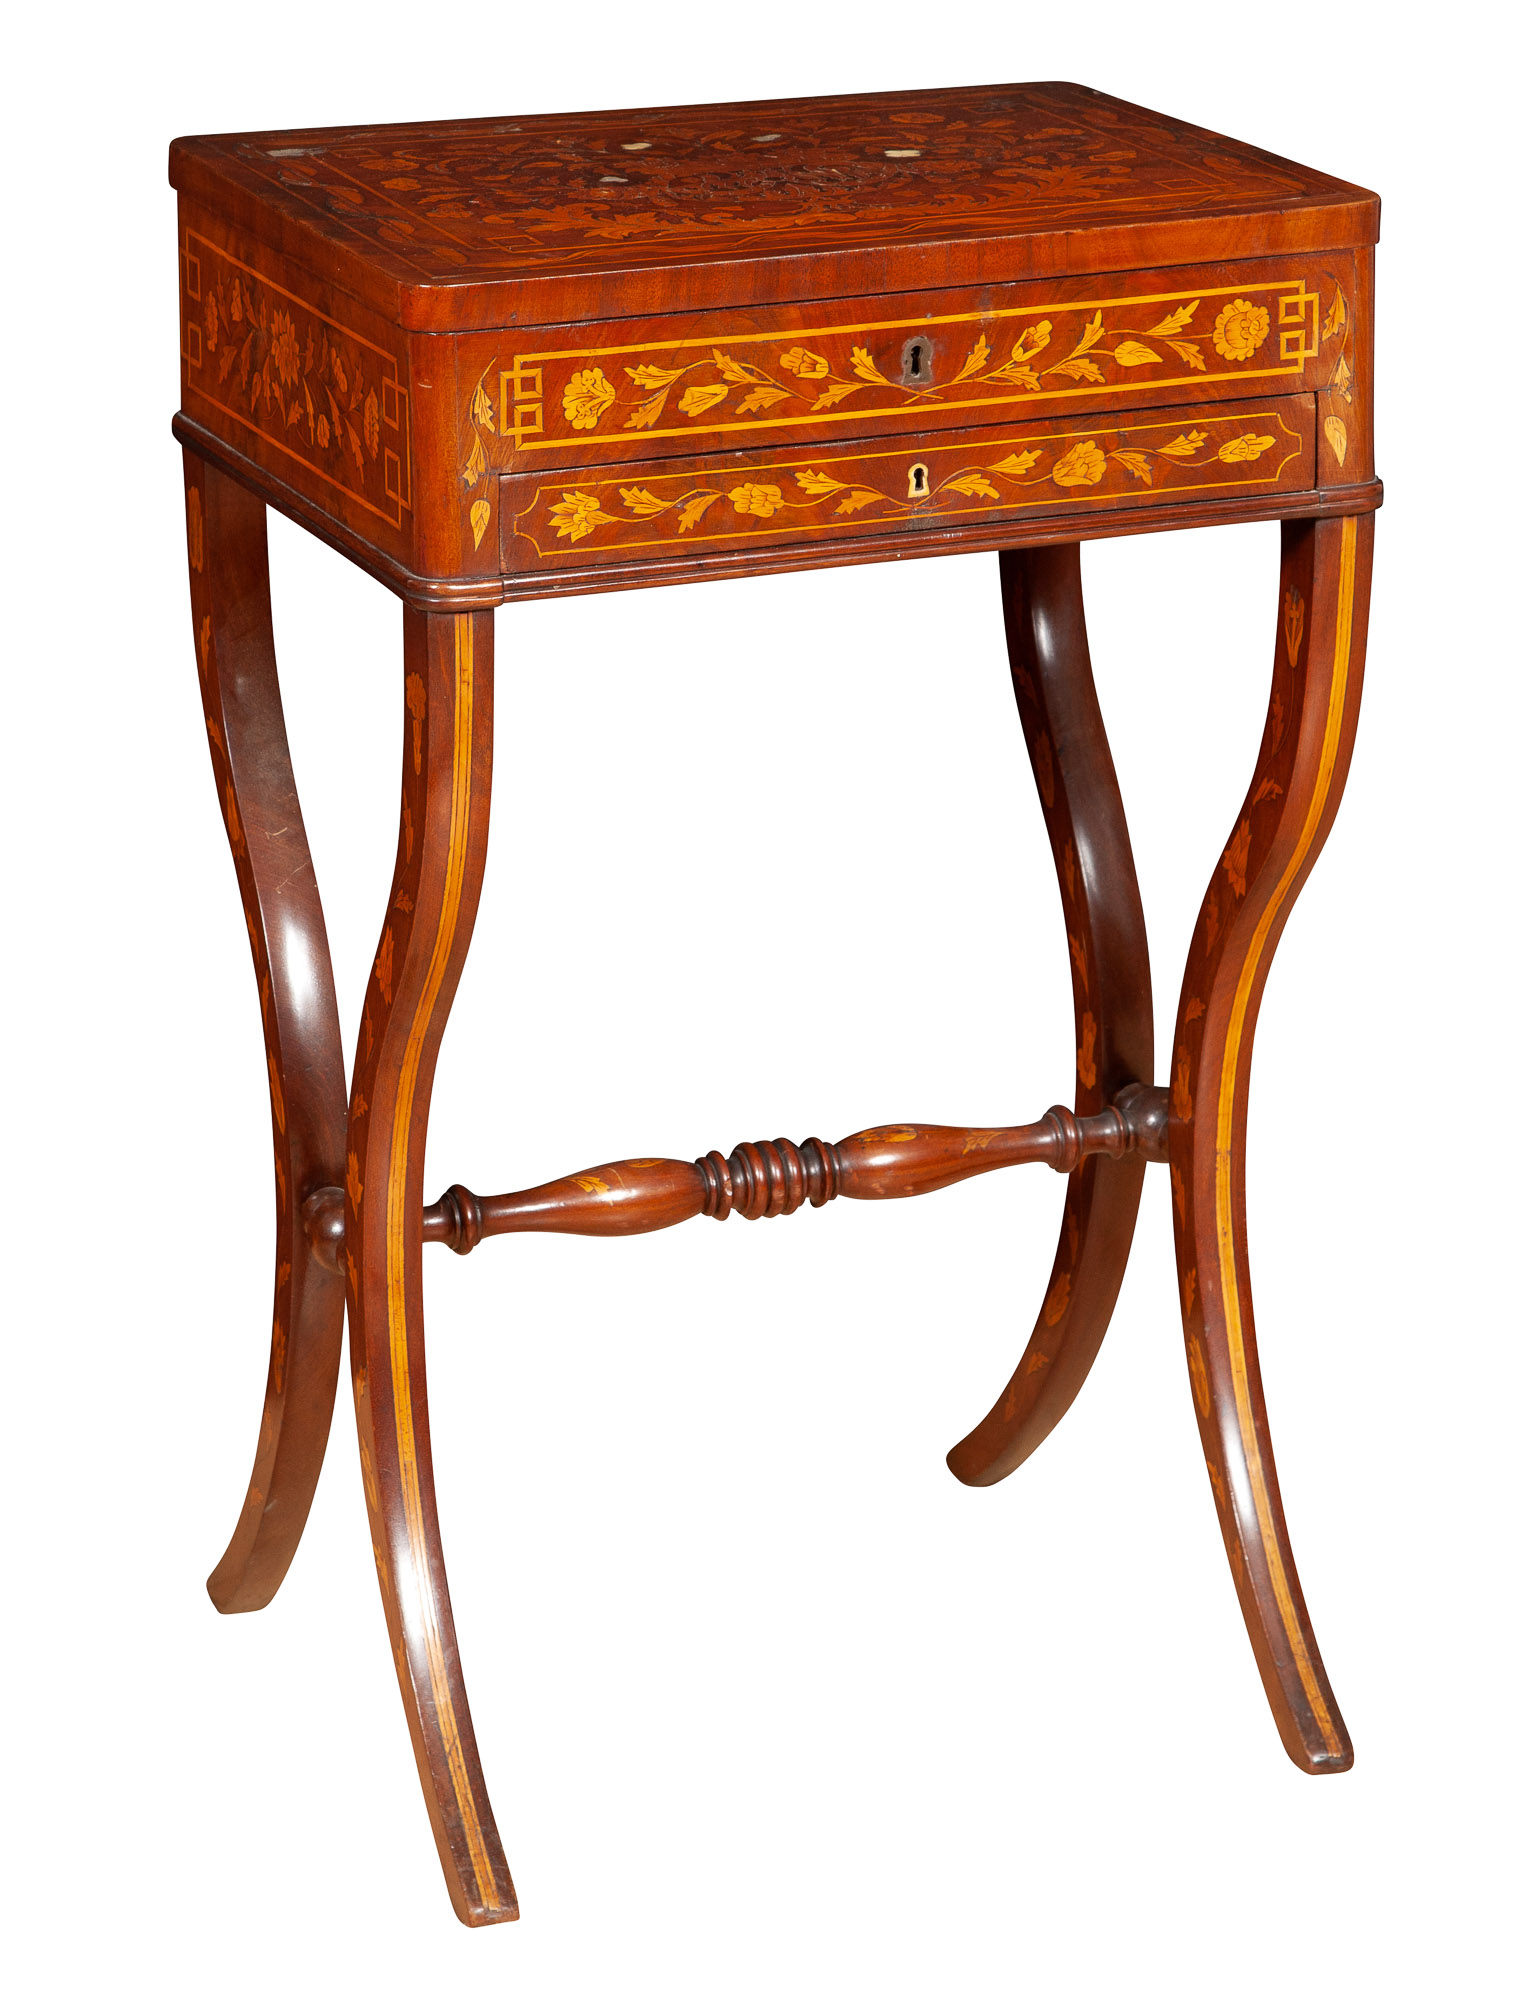 Lot image - Continental Neoclassical Mahogany and Mother-of-Pearl Inlaid Marquetry Work Table